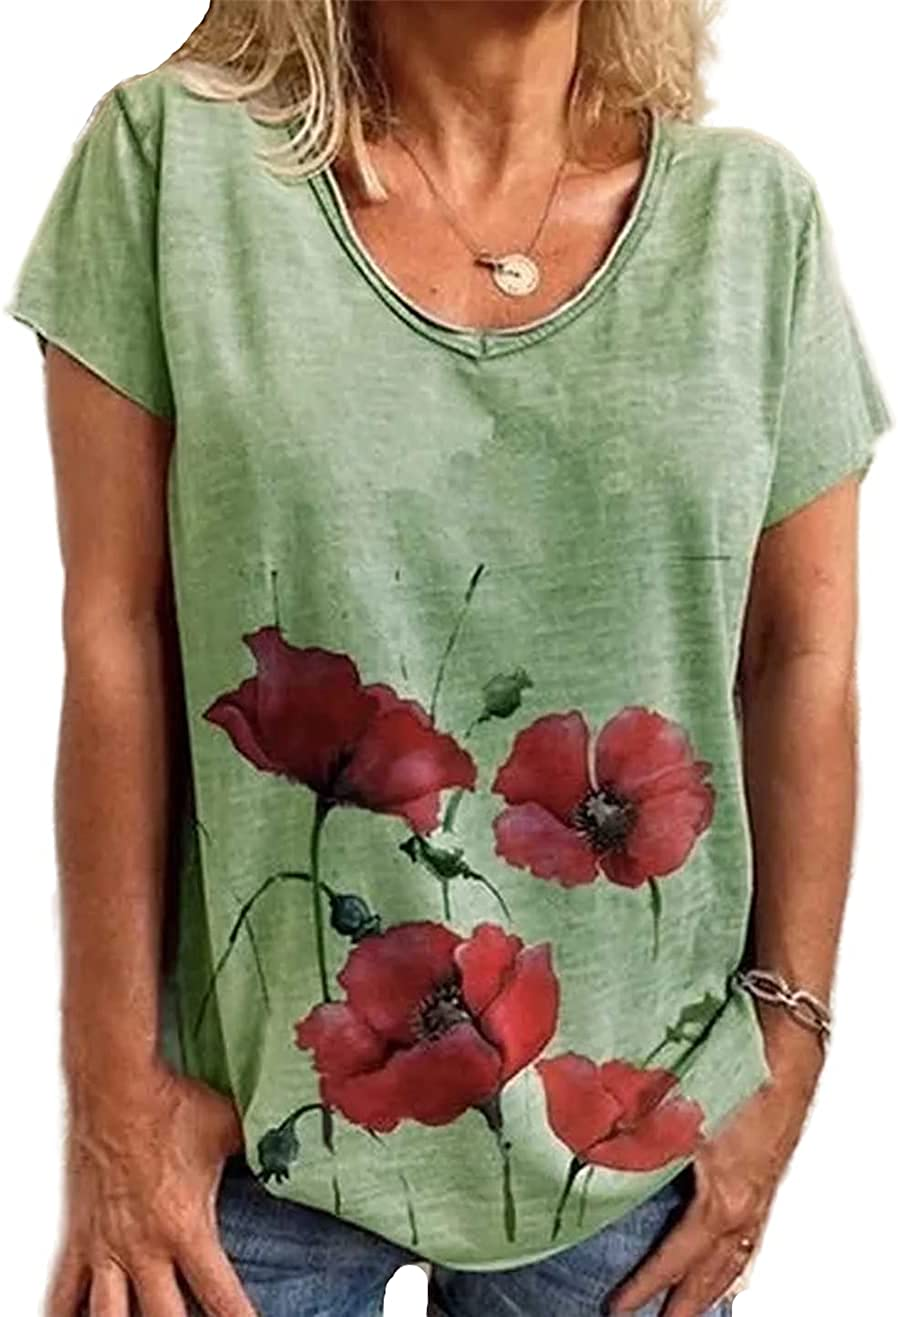 FRMUIC Women's Loose Printed Round Neck Short Sleeve Cute Flower Pattern Casual Ladies T Shirt Top